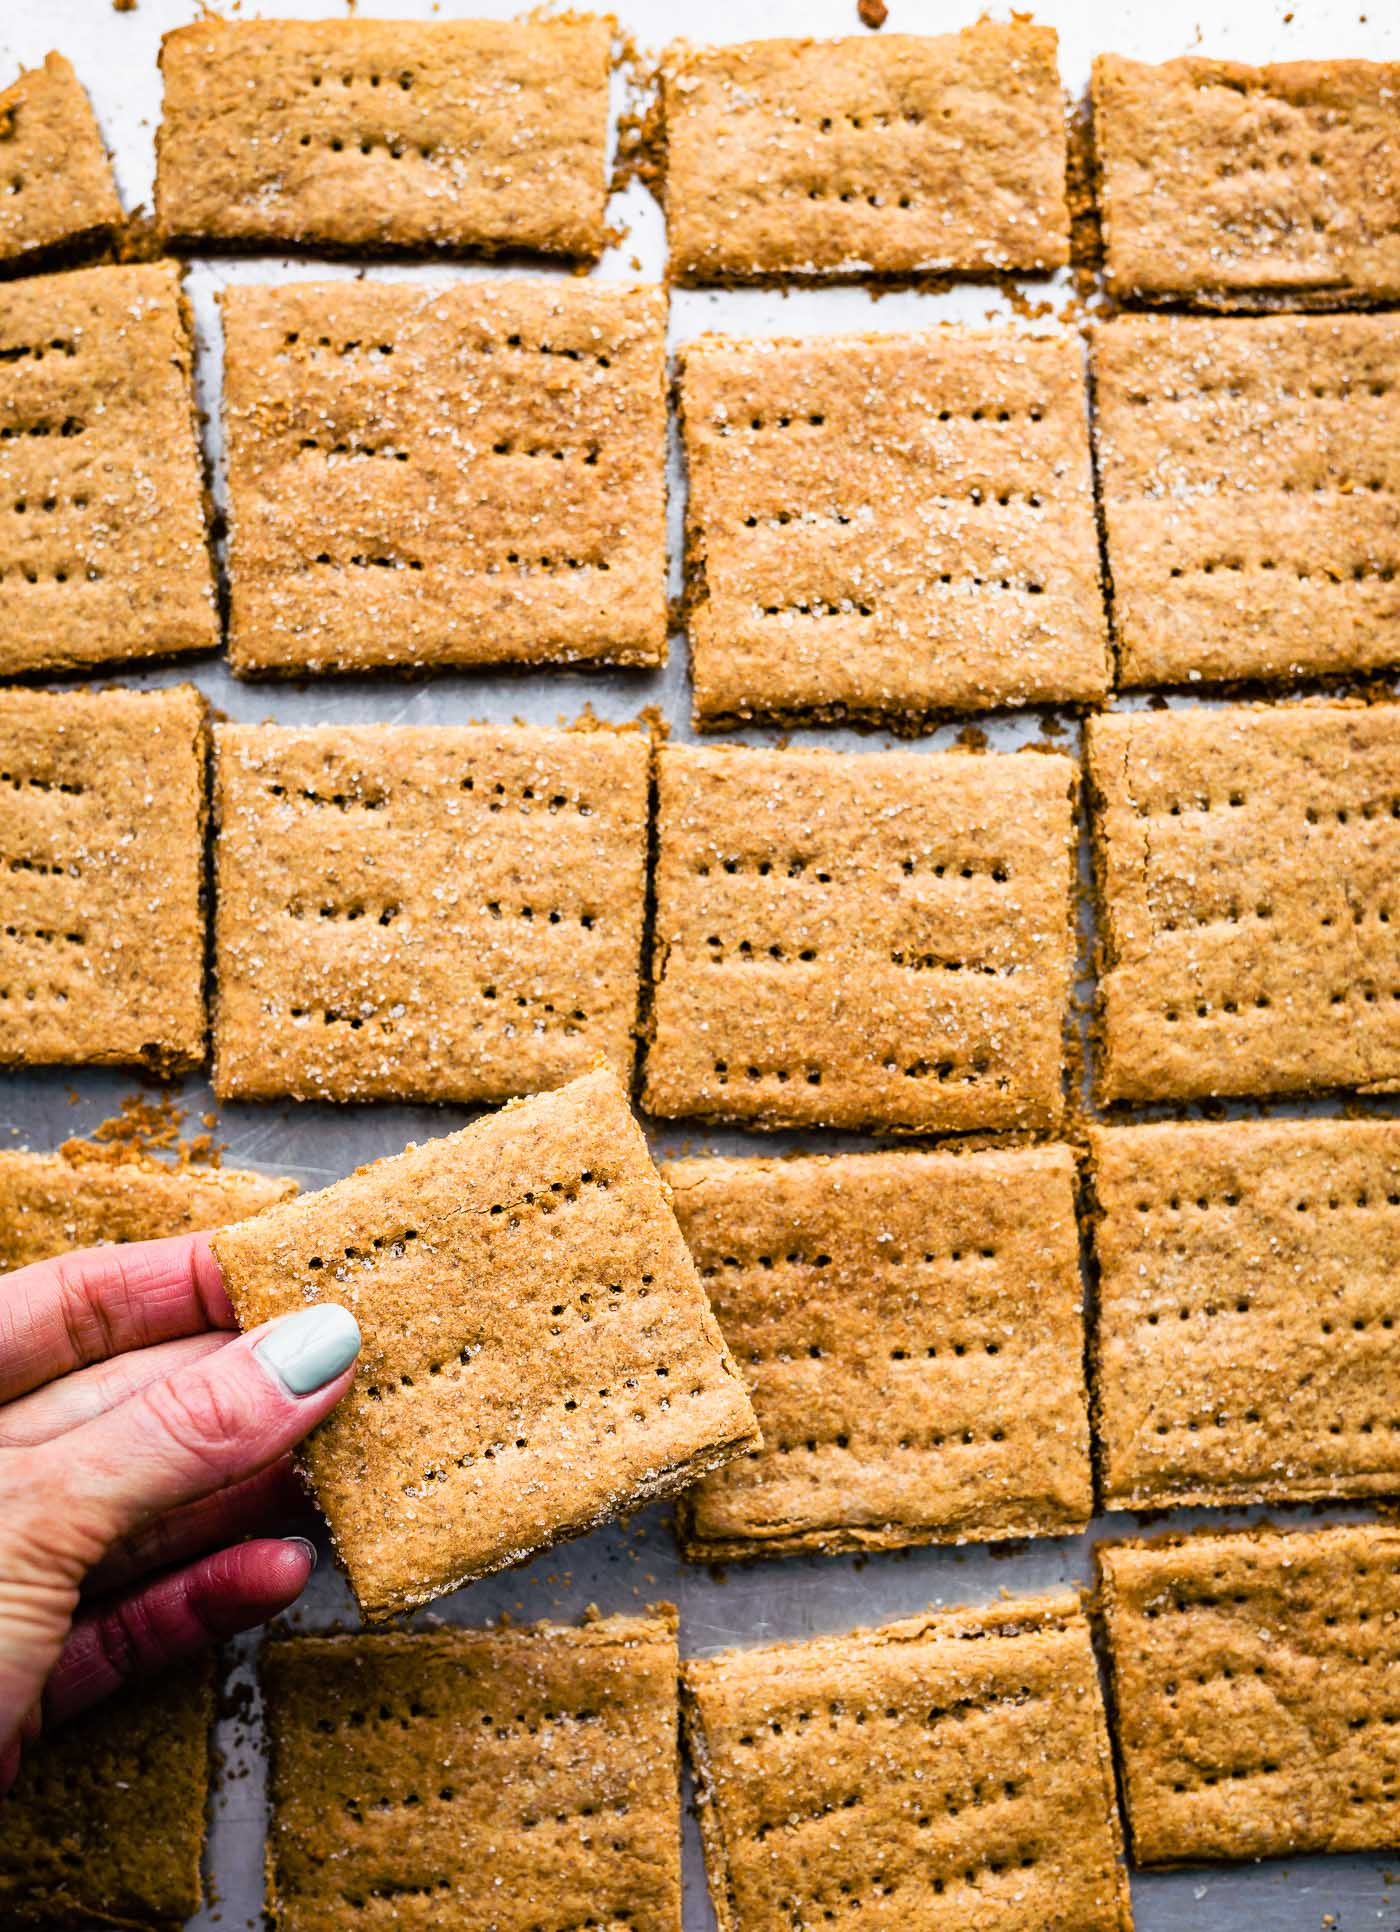 Overhead image of a hand reach in to grab a graham cracker out of a sheet pan of them.